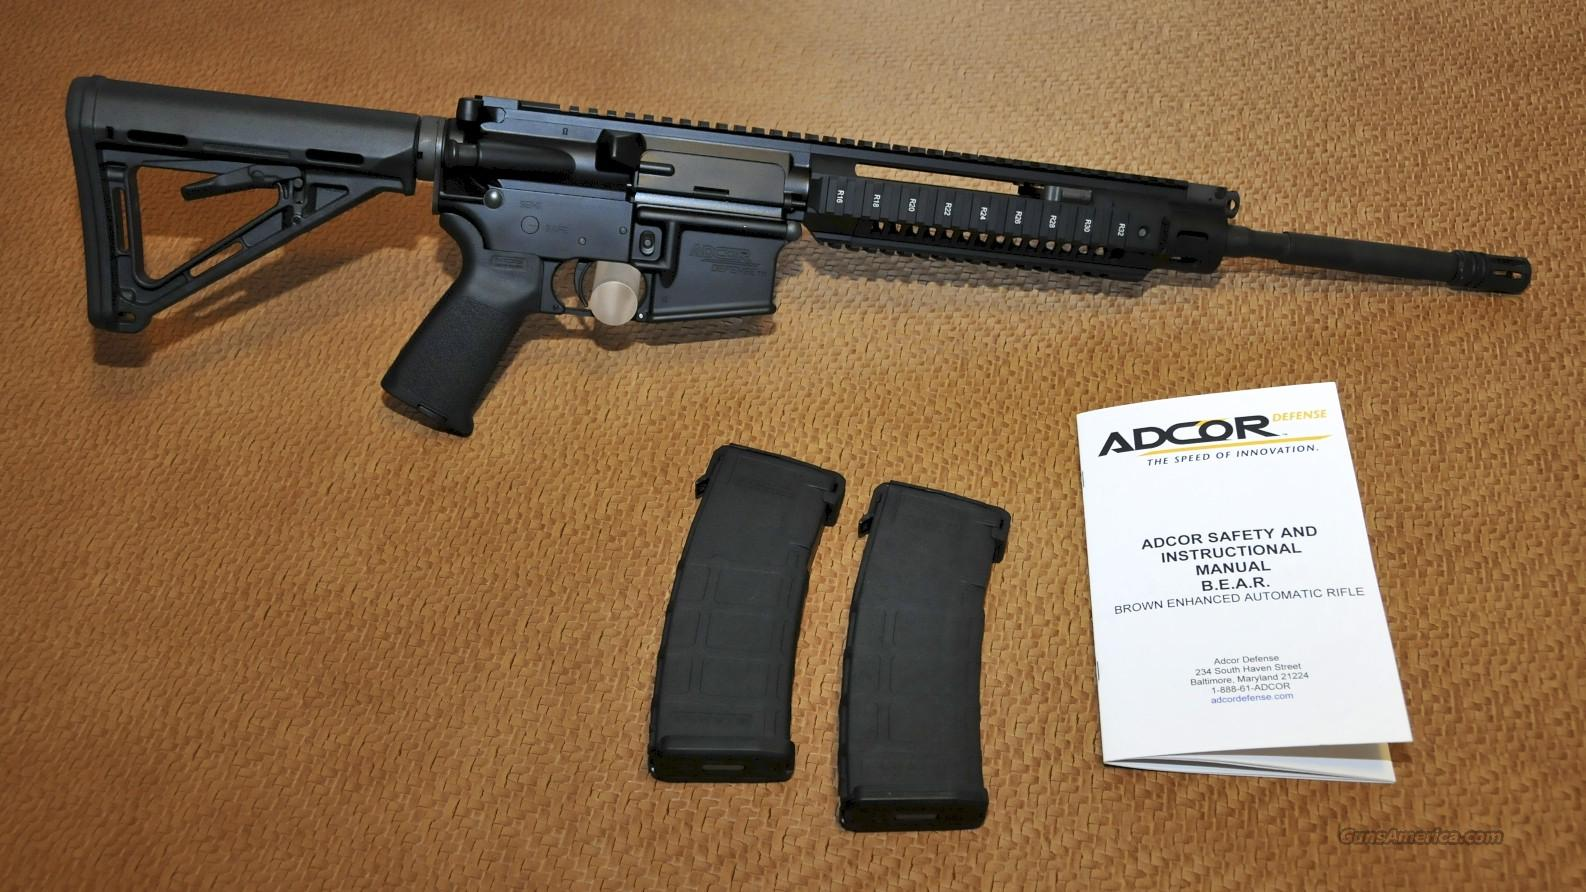 Adcor and the Demise of the Improved Carbine Competition